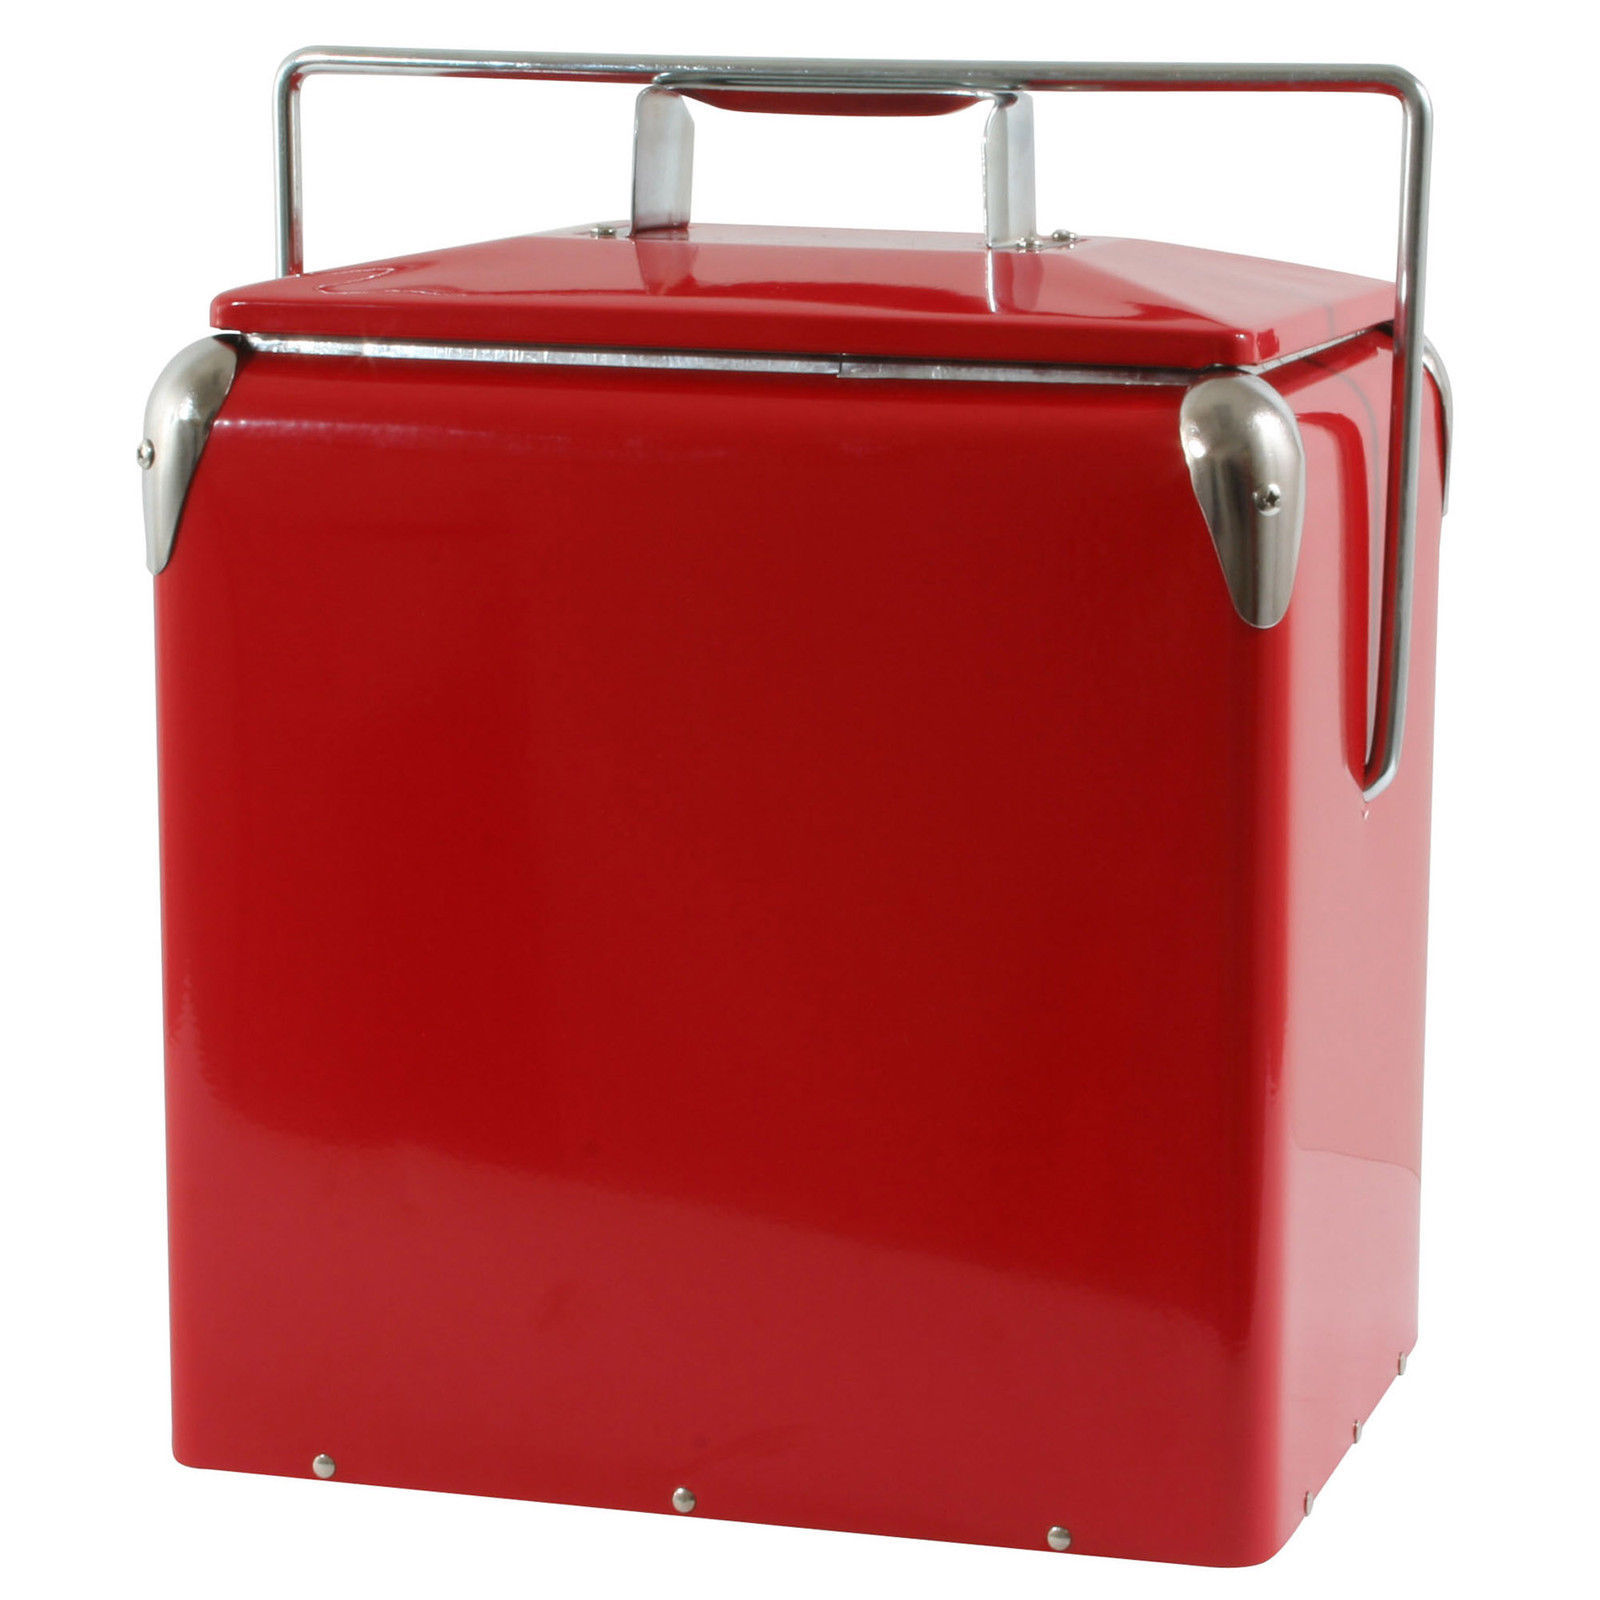 new picnic cooler red built in bottle opener retro cans bottles food camping coolers ice chests. Black Bedroom Furniture Sets. Home Design Ideas